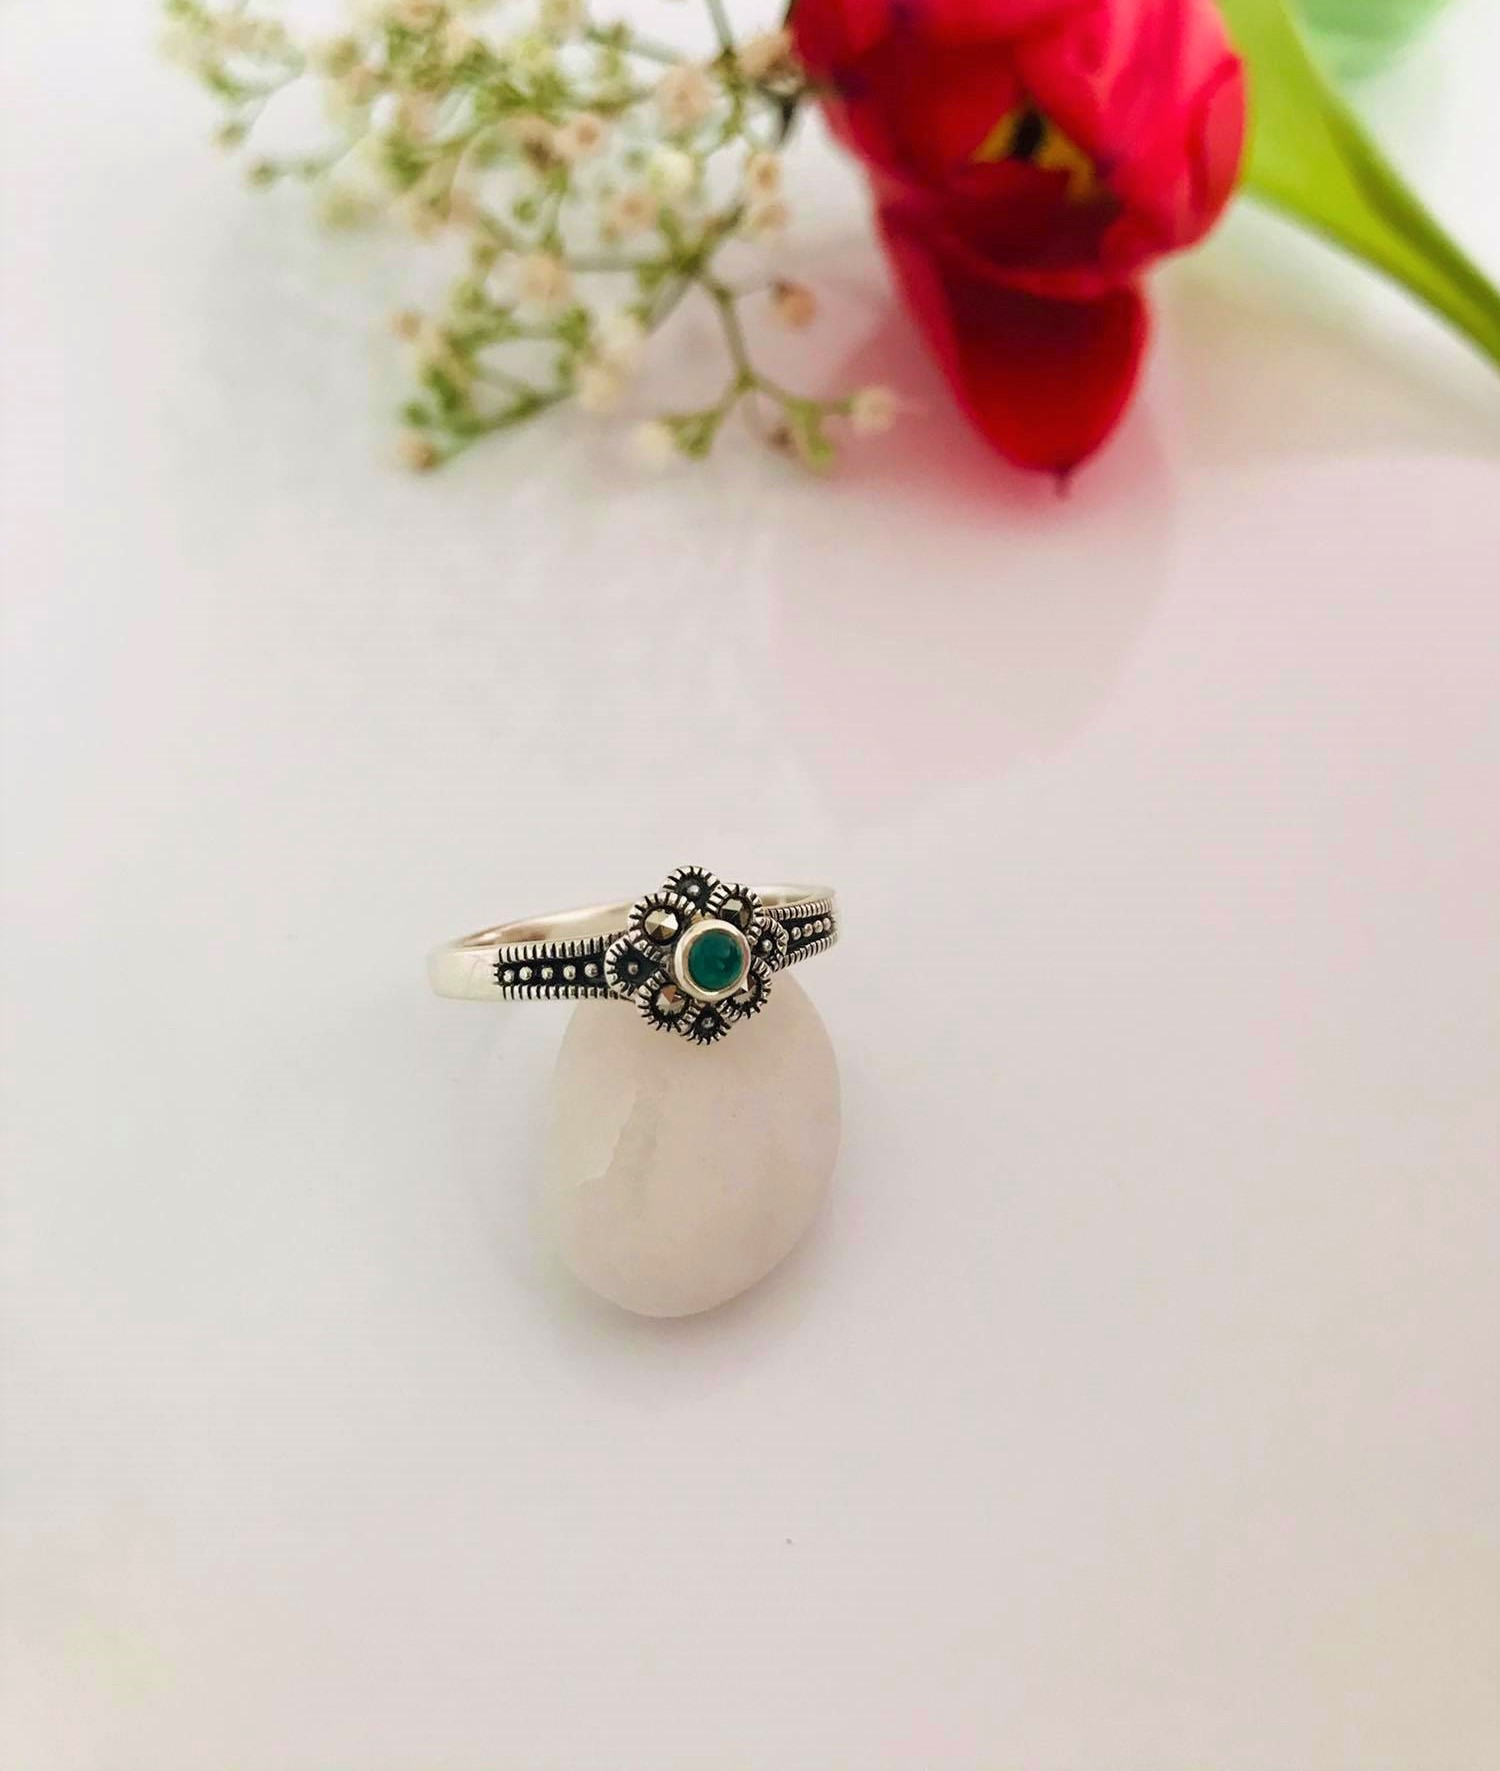 Green Onyx and Marcasite set in Sterling Silver Image